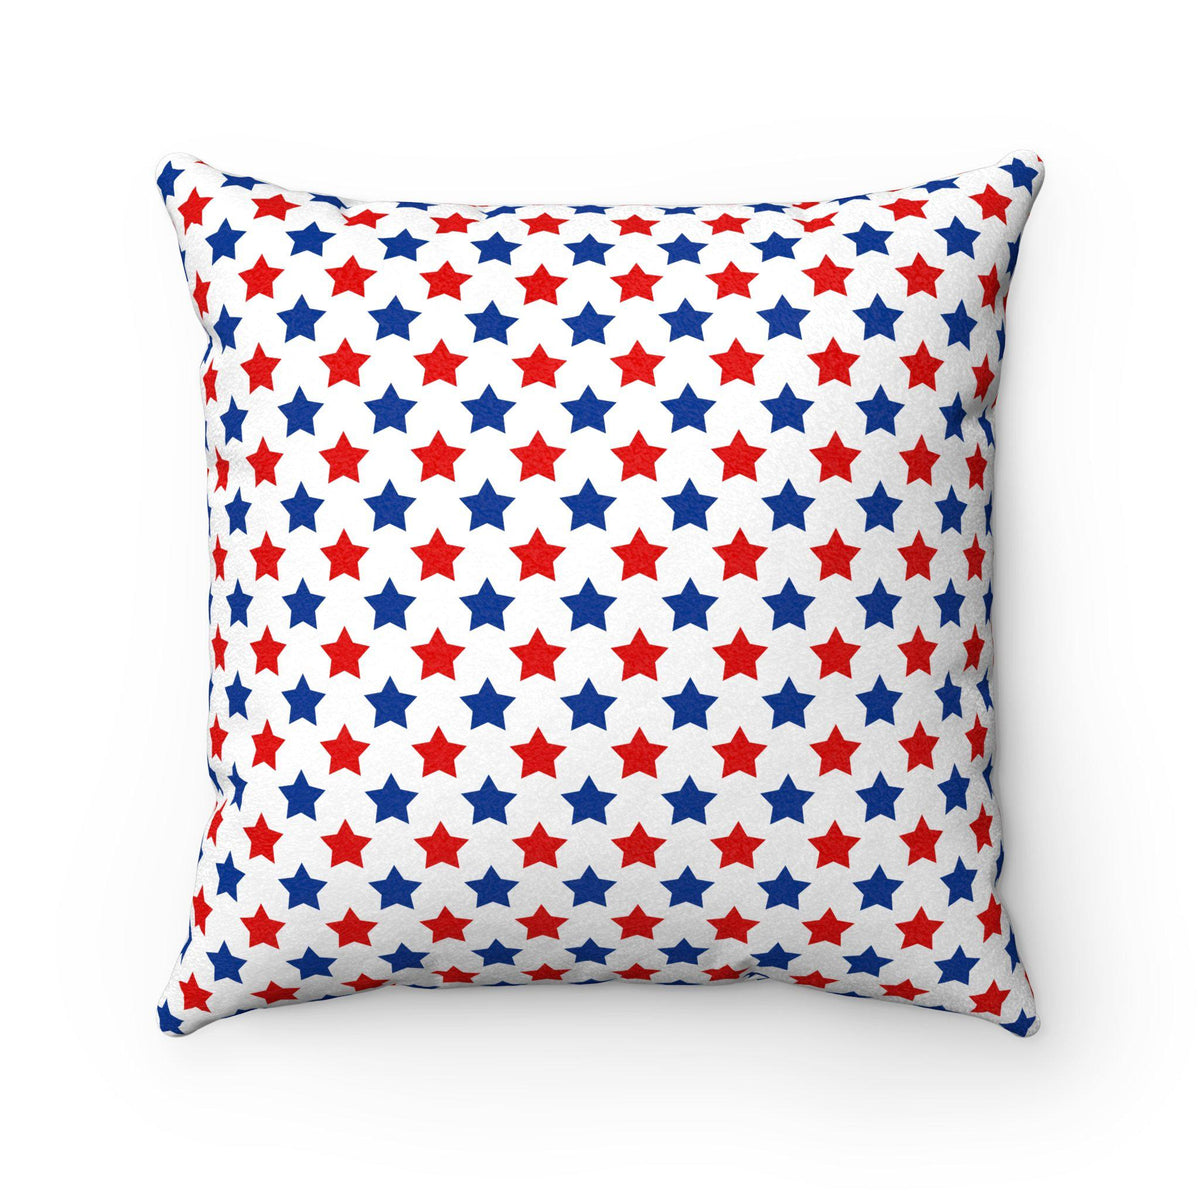 Maison d'Elite American stars decorative cushion-Home Decor - Decorative Accents - Pillows & Throws - Decorative Pillows-Maison d'Elite-Très Elite